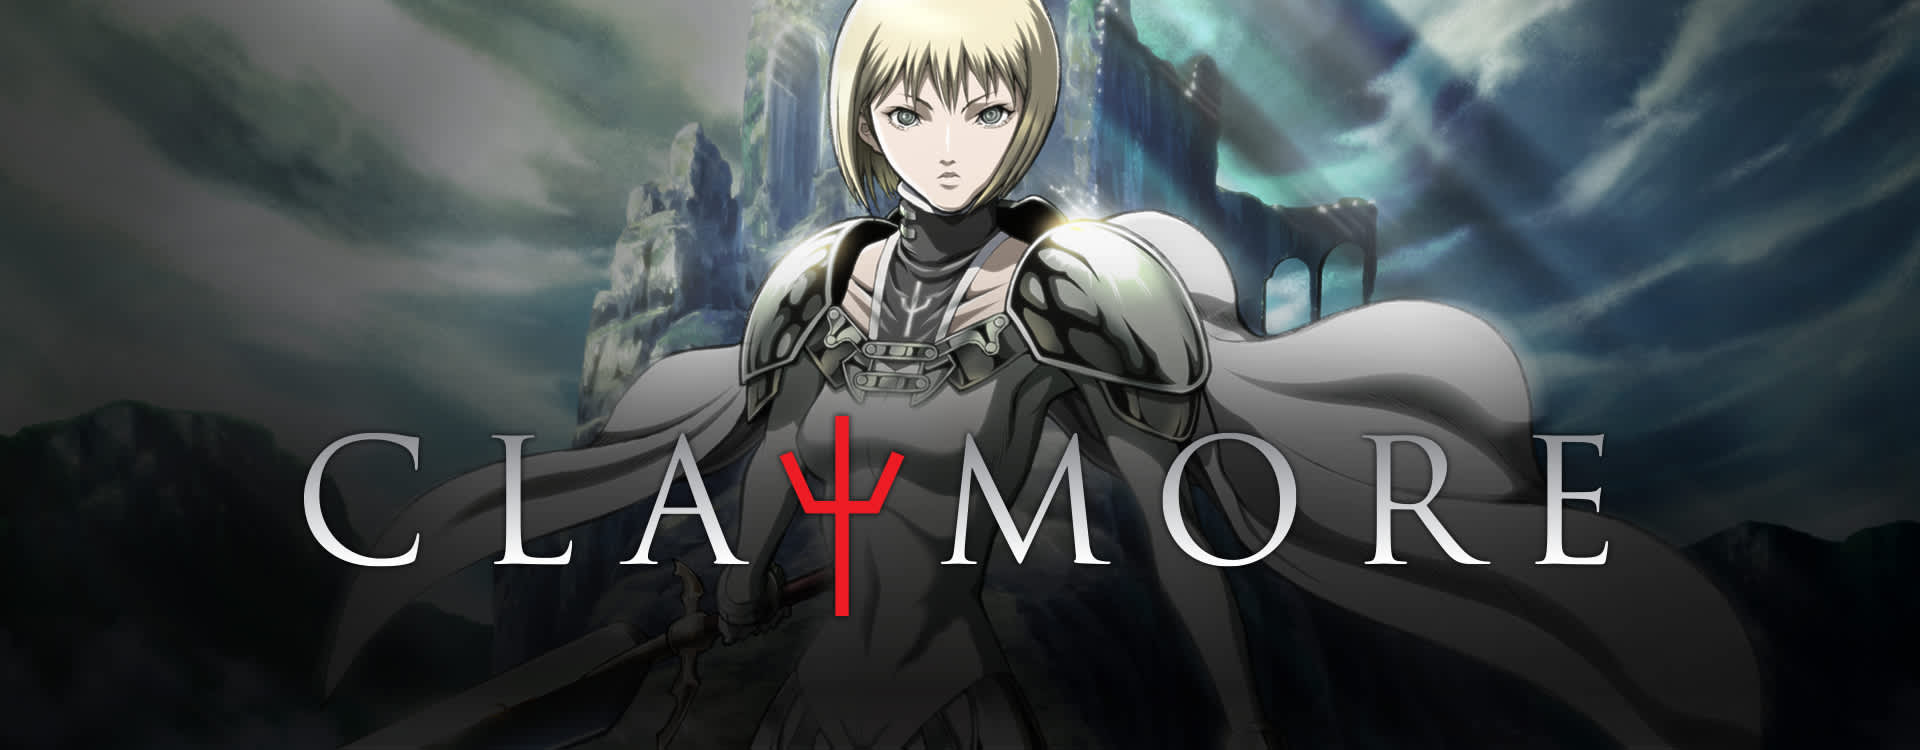 Image result for claymore anime